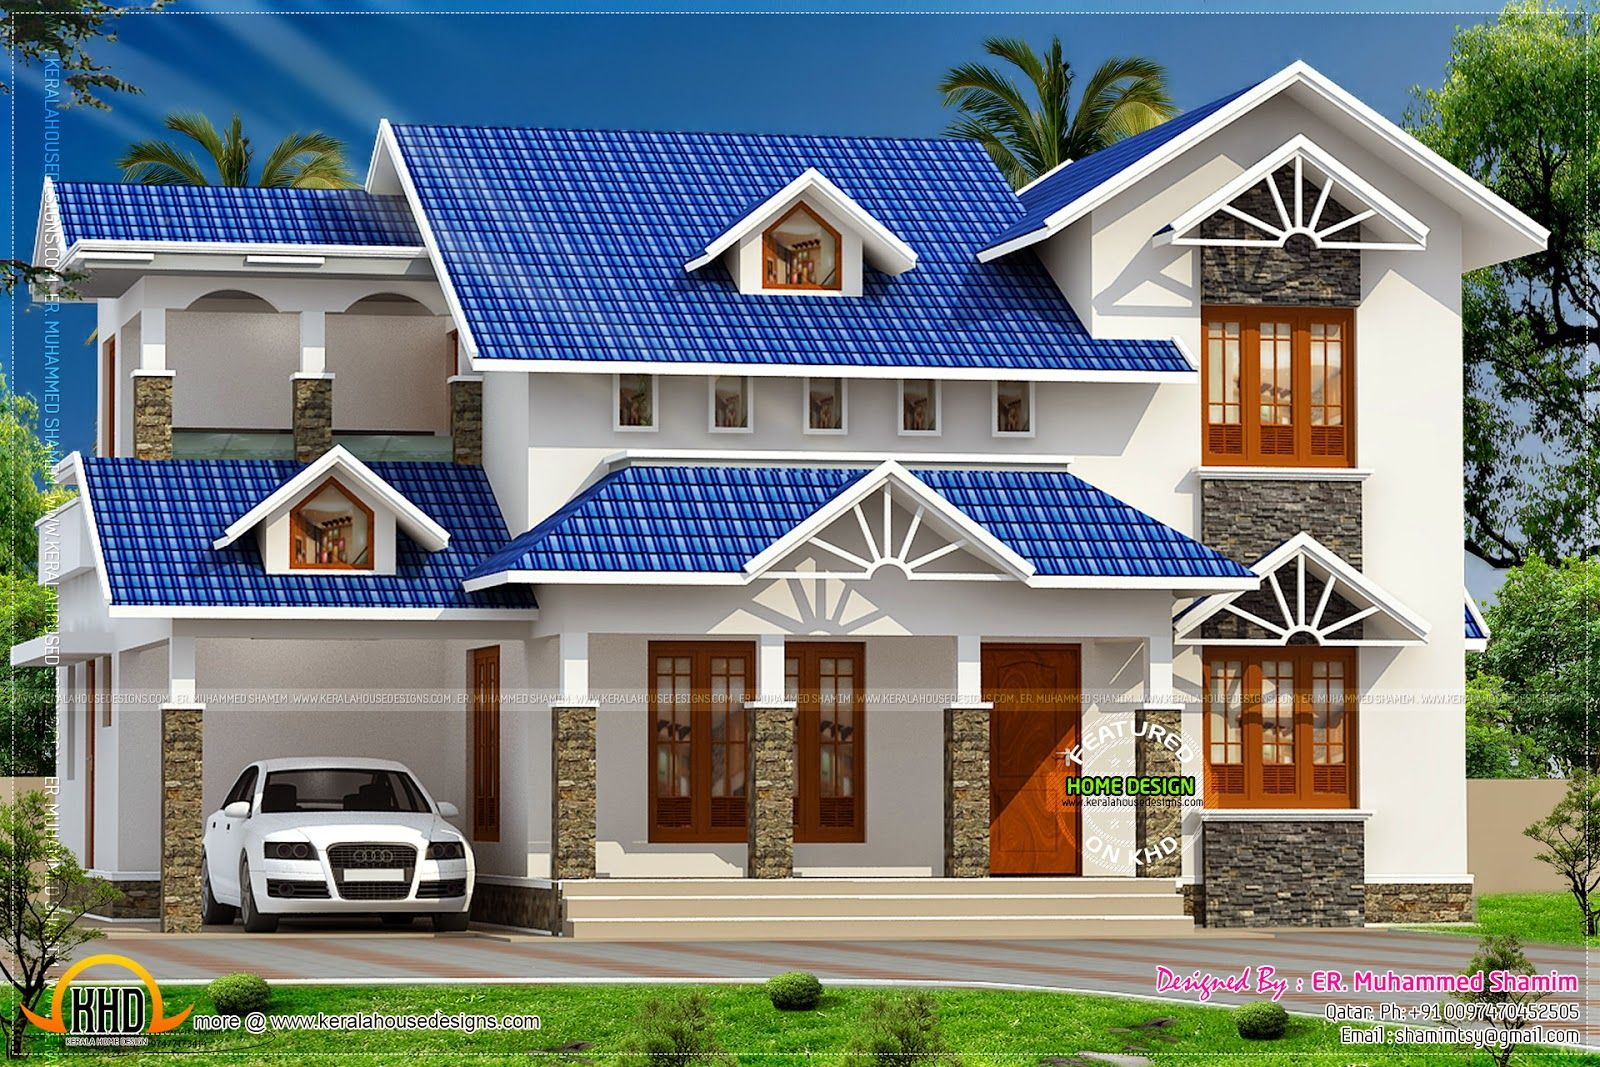 20 Roof Types For Your Awesome Homes Complete With The Pros Cons Roof Design Kerala House Design House Roof